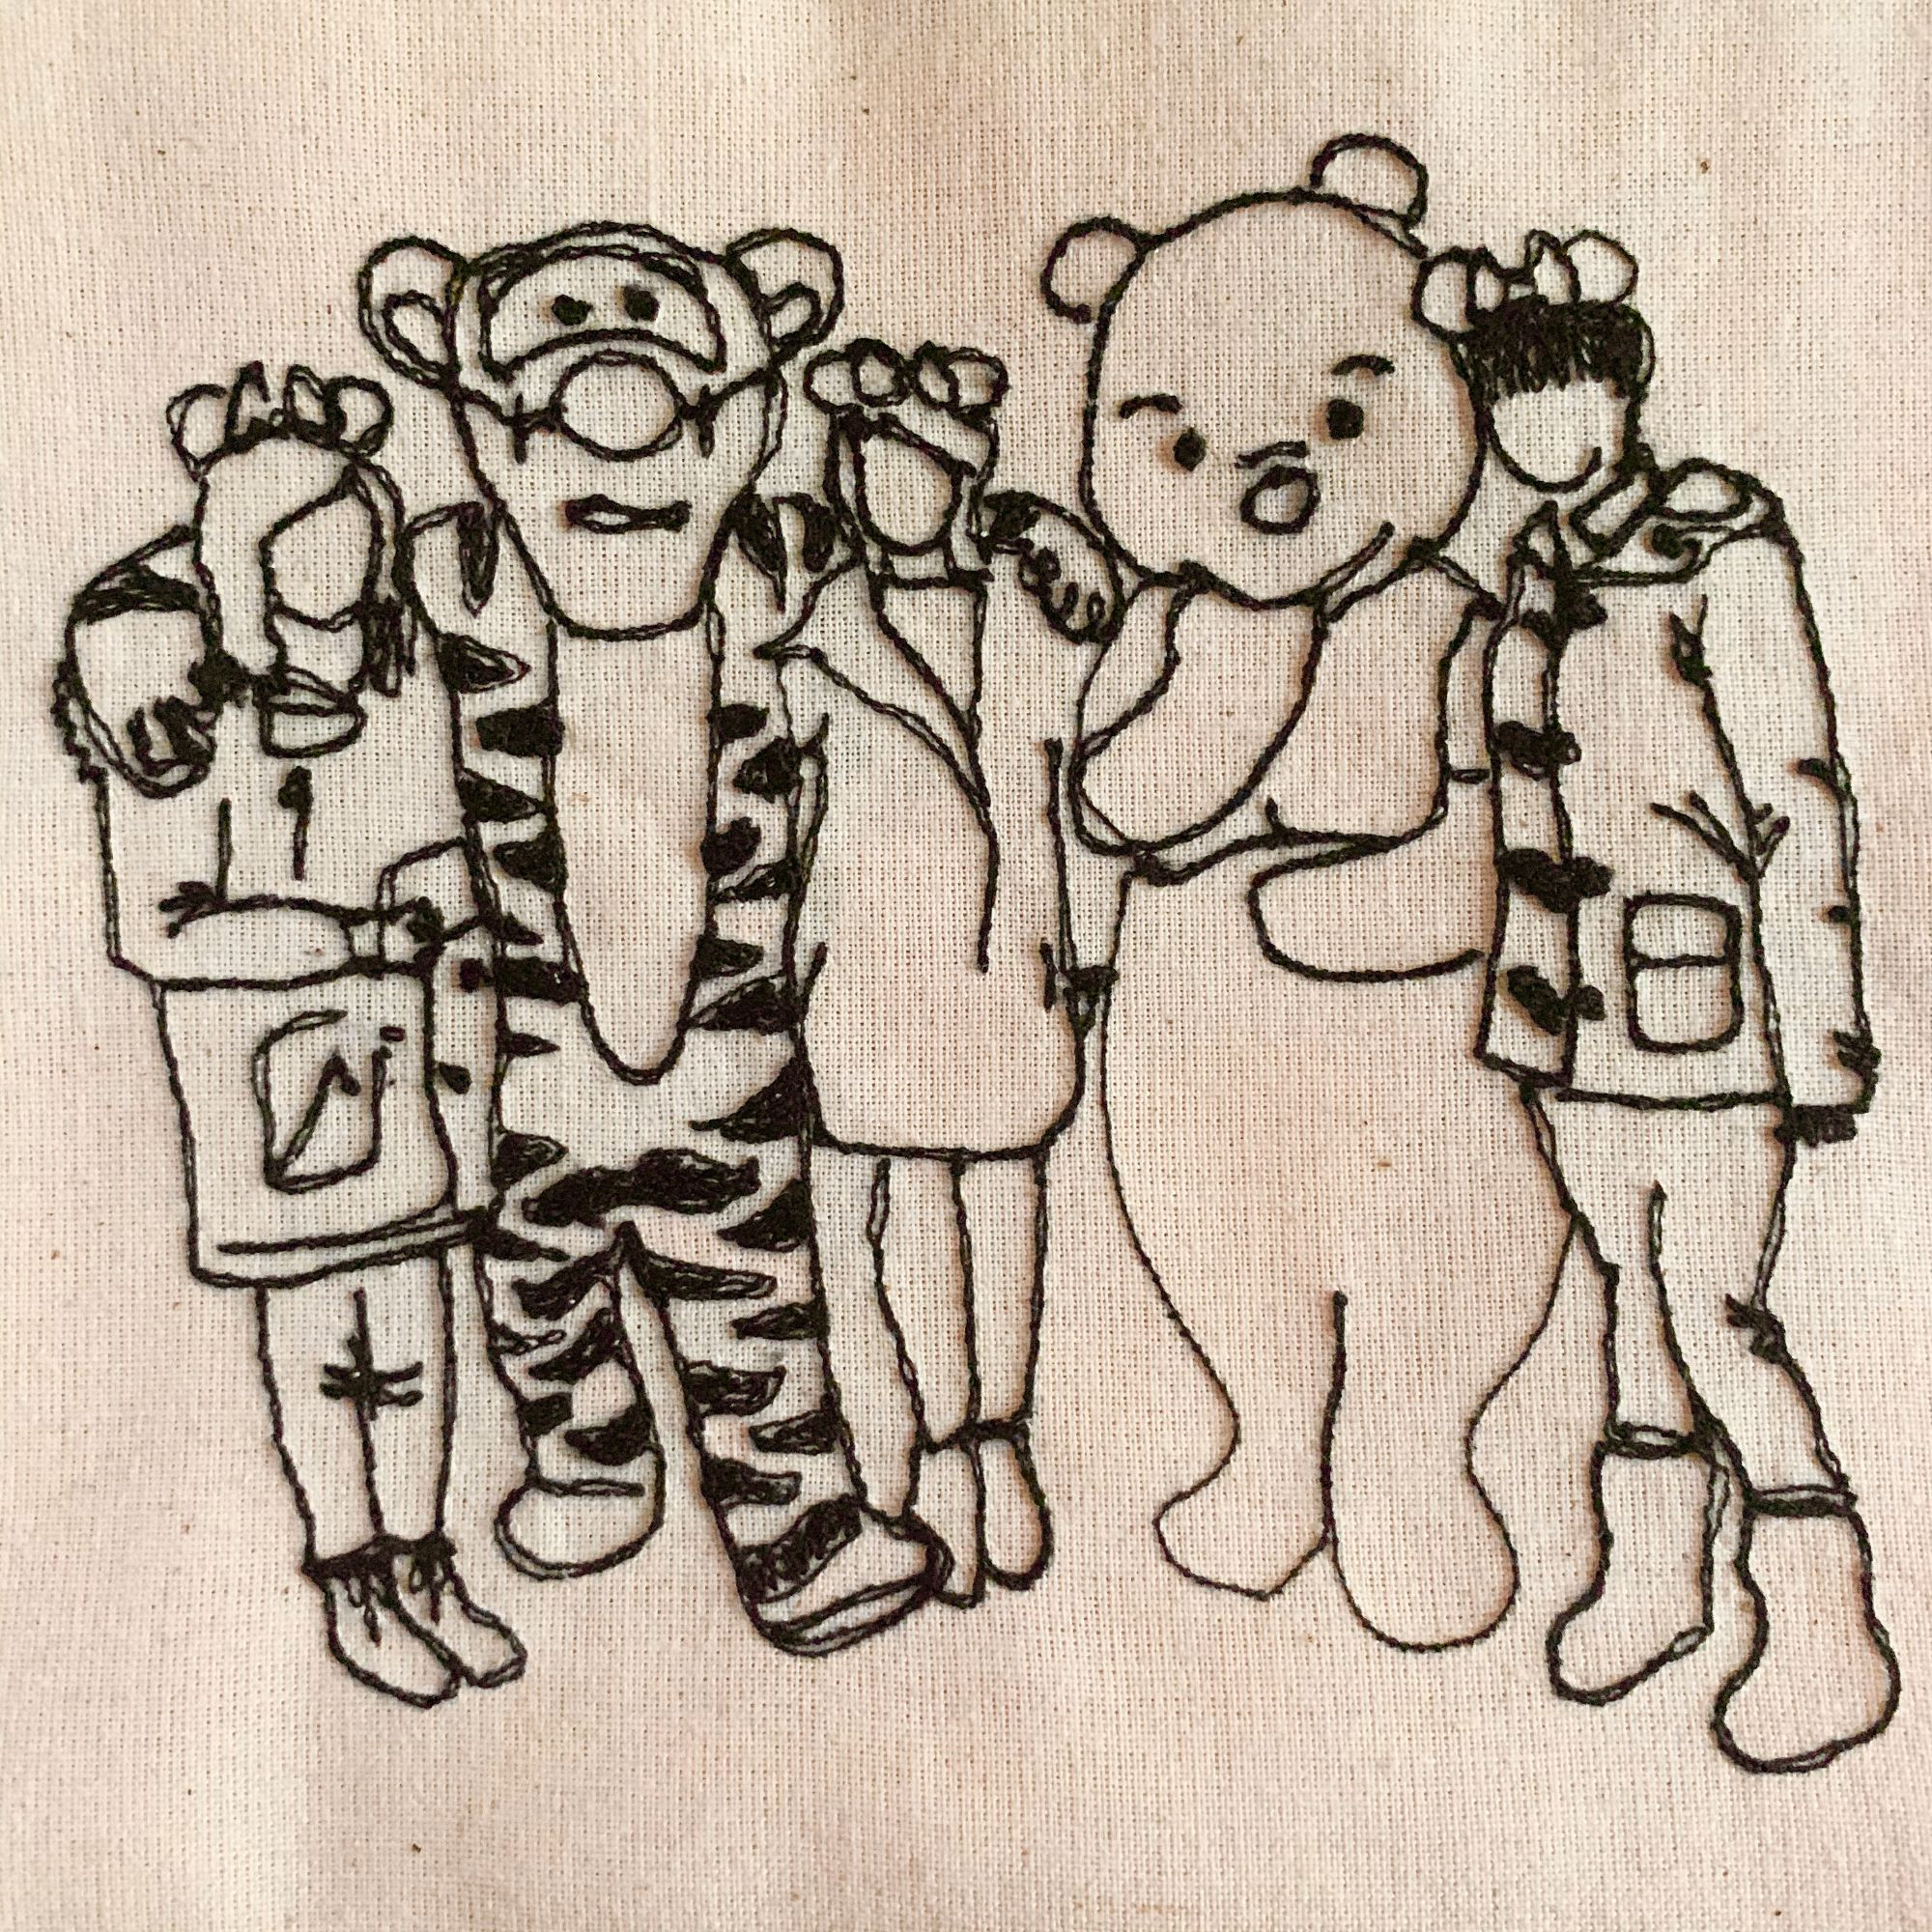 A machine stitched portrait of a group of people with cartoon mascots - Contrary To Reason